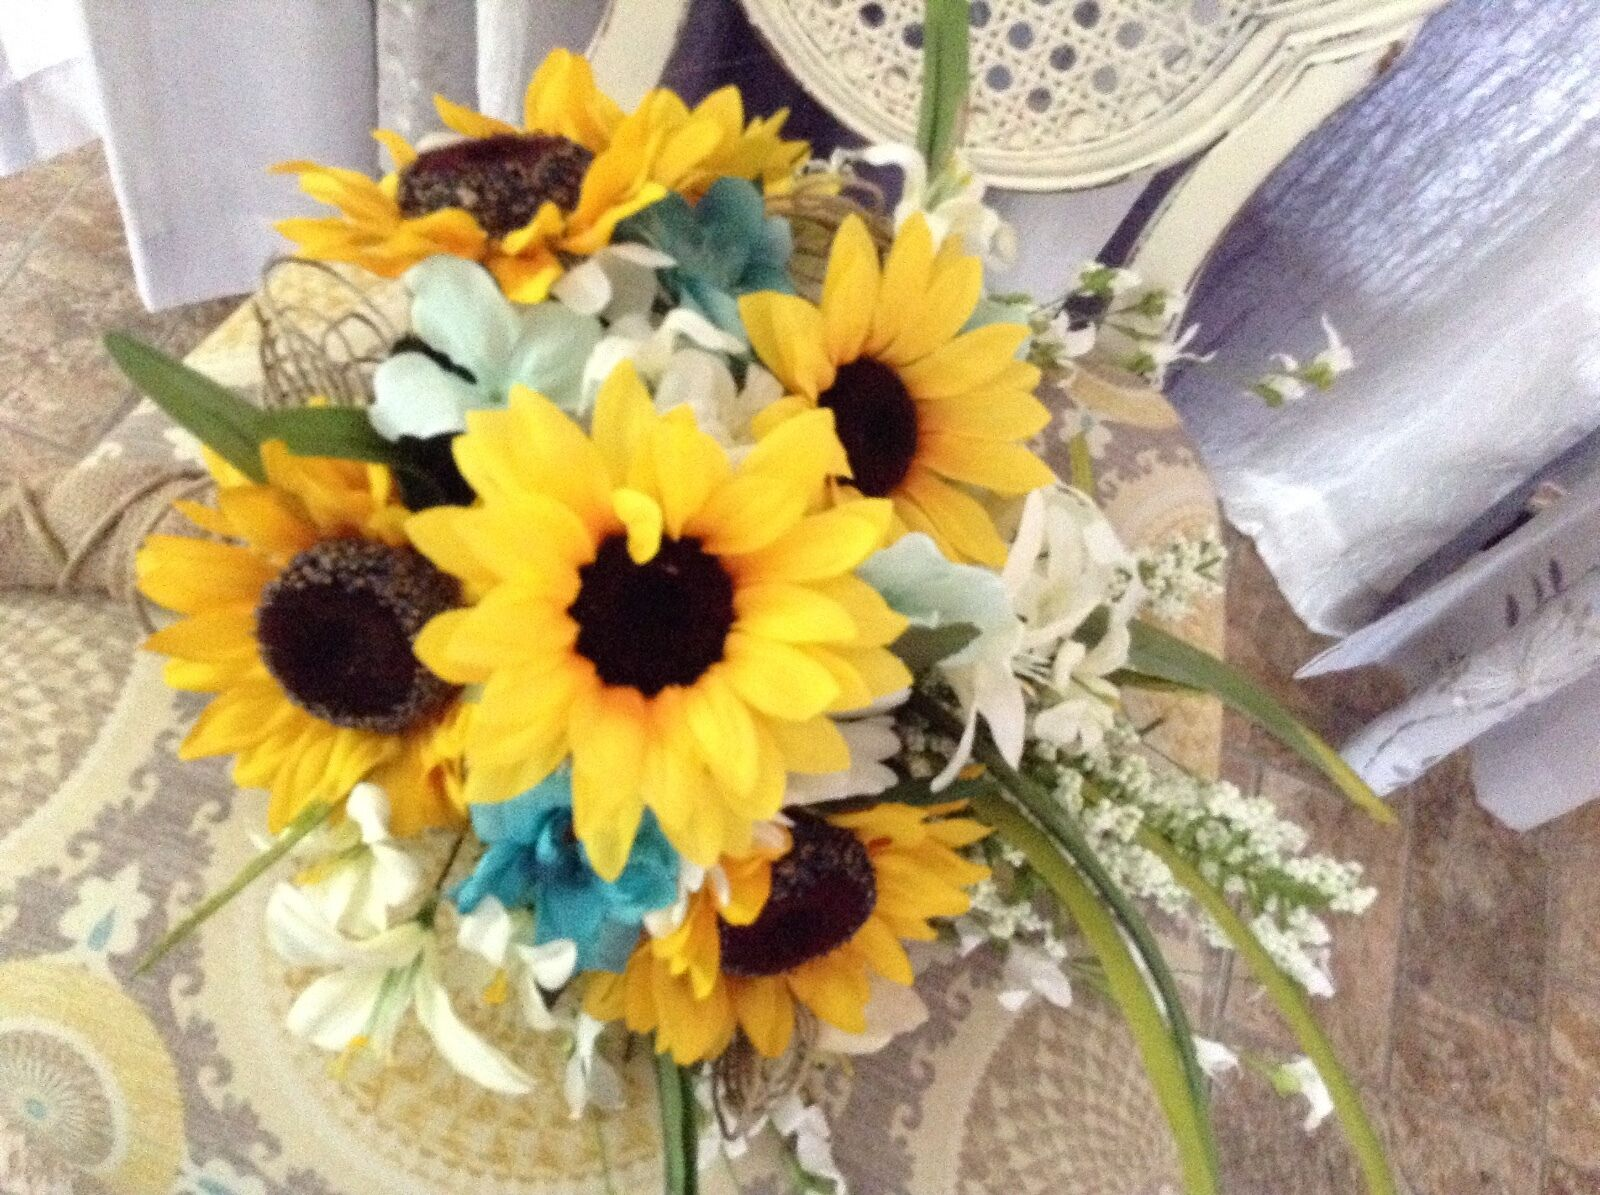 Tournesols Mariage Bouquets Mariage Décorations complet WED 'G 12 Bouq + Recep' N